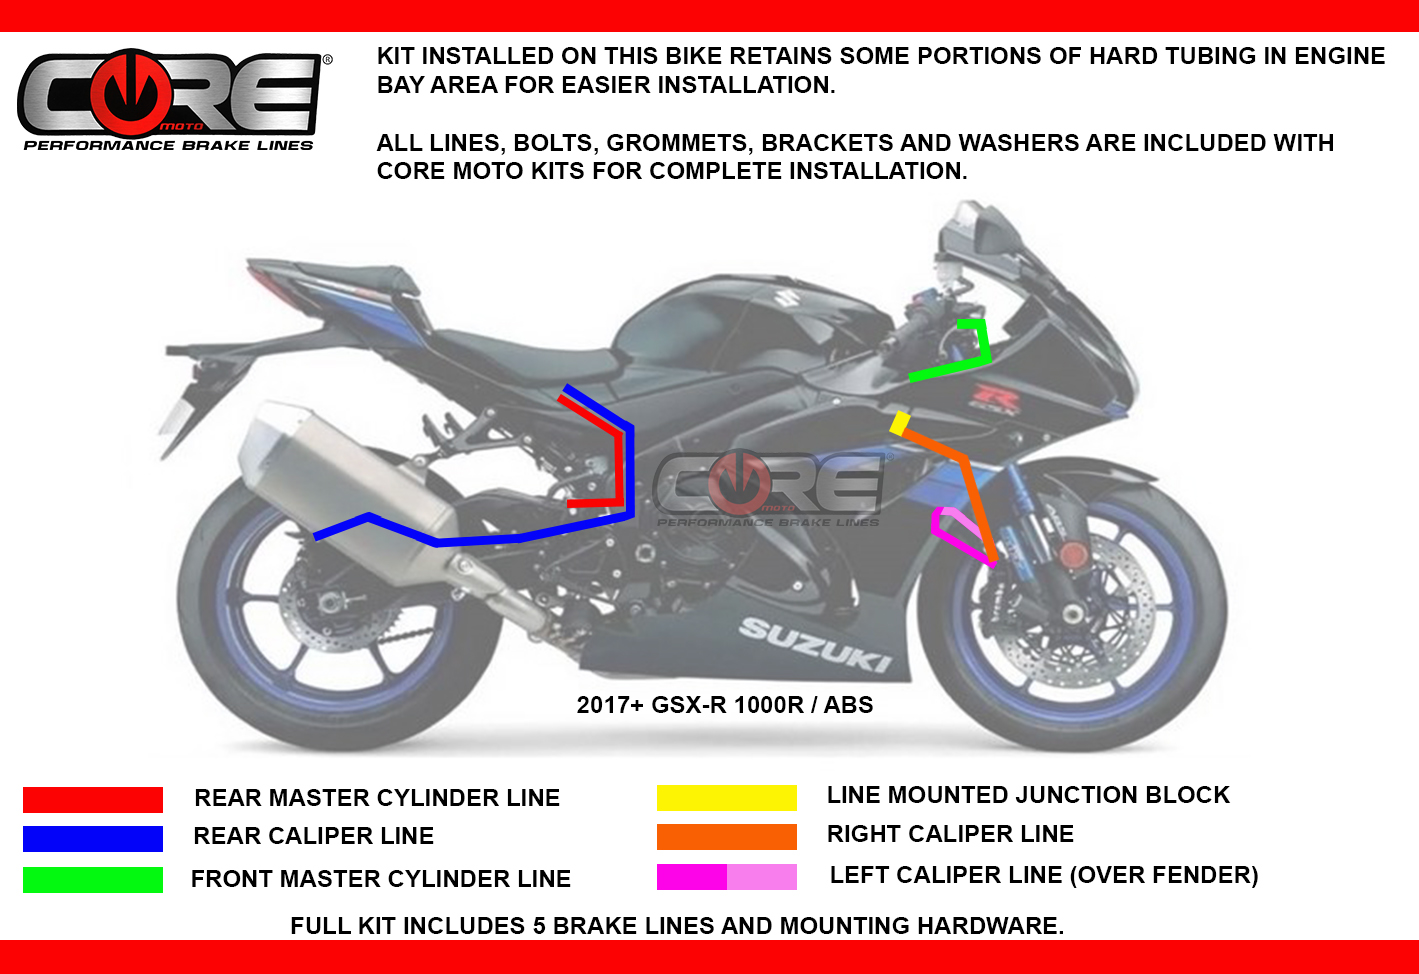 Core Moto Street Gsx R 1000r Abs 2017 2019 Suzuki Gsxr1000r Ducati Gt 750 Wiring Diagram Line Includes 2 Regular Grommets For Use In Oem Mounts On Swingarm As Well Several Small That Fit Speed Sensor Wire Clips A Clean